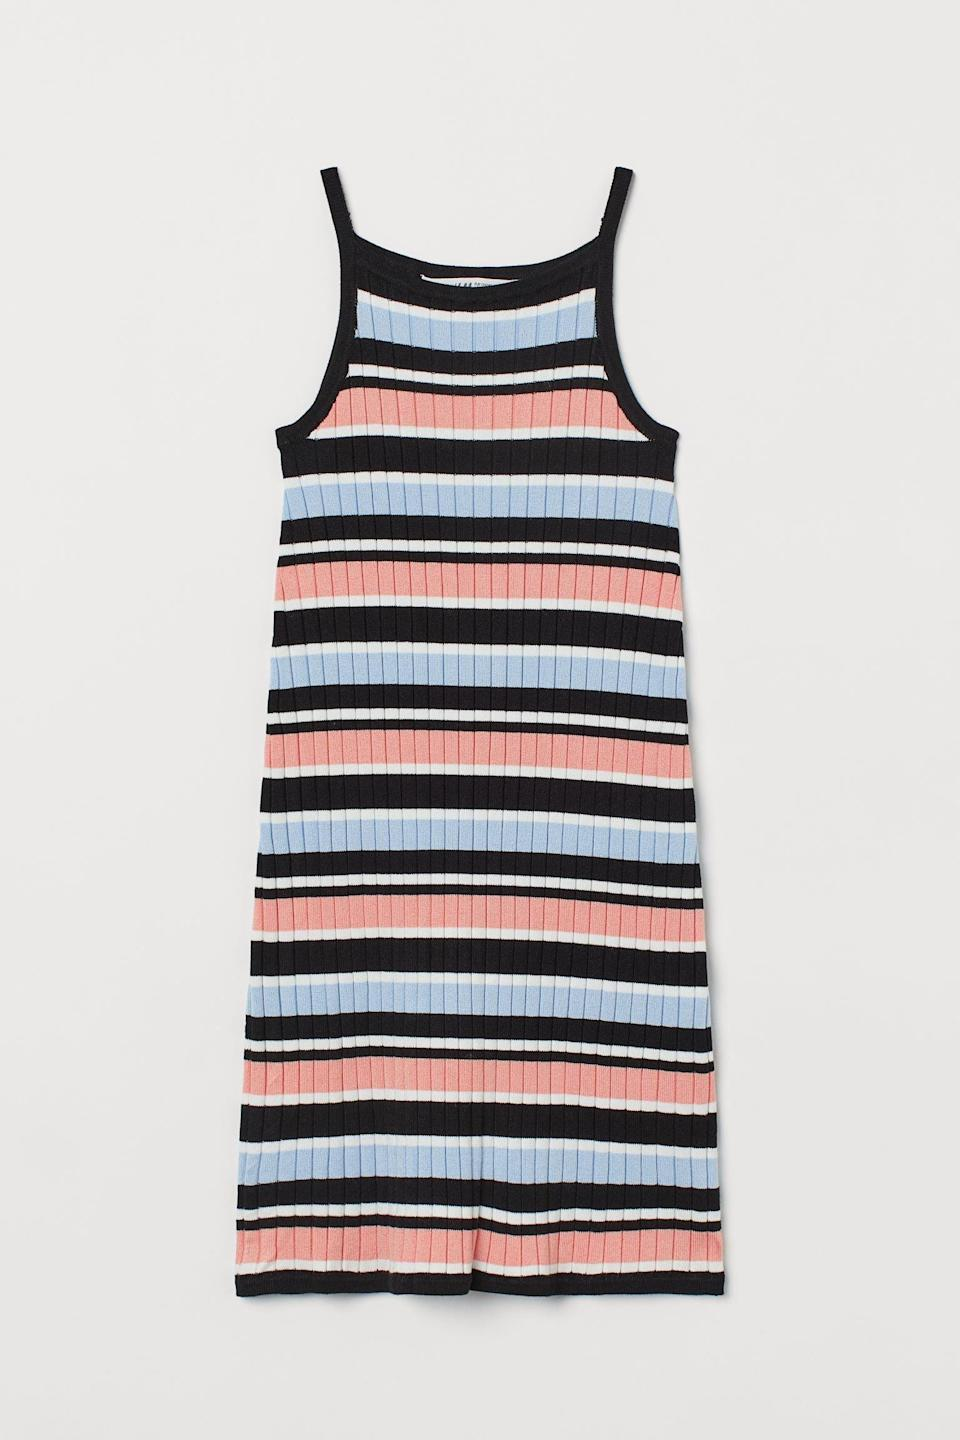 <p>For errands or casual hangouts, this <span>H&amp;M Ribbed Dress</span> ($20) will keep you comfortable.</p>